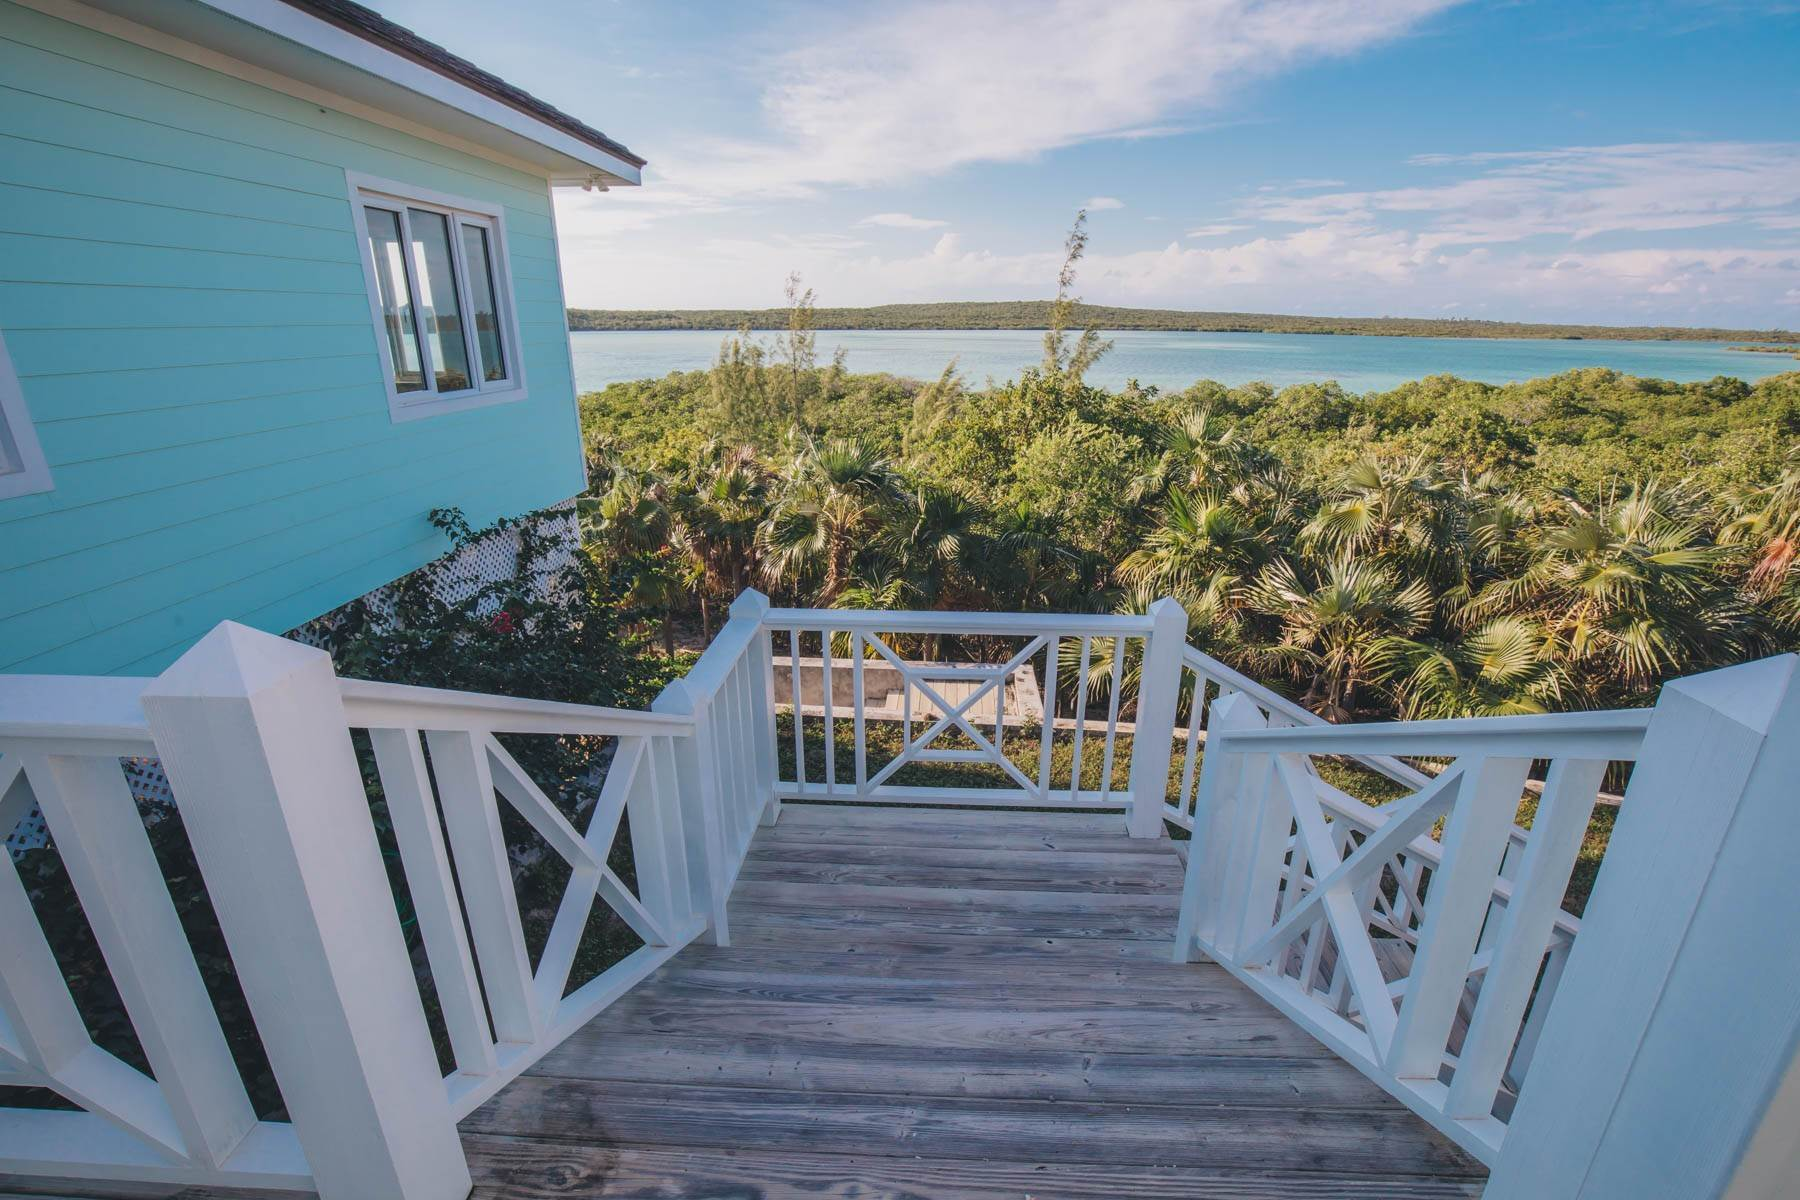 22. Single Family Homes for Sale at Savannah Sound Home - Windermere Island - MLS 44478 Windermere Island, Eleuthera, Bahamas